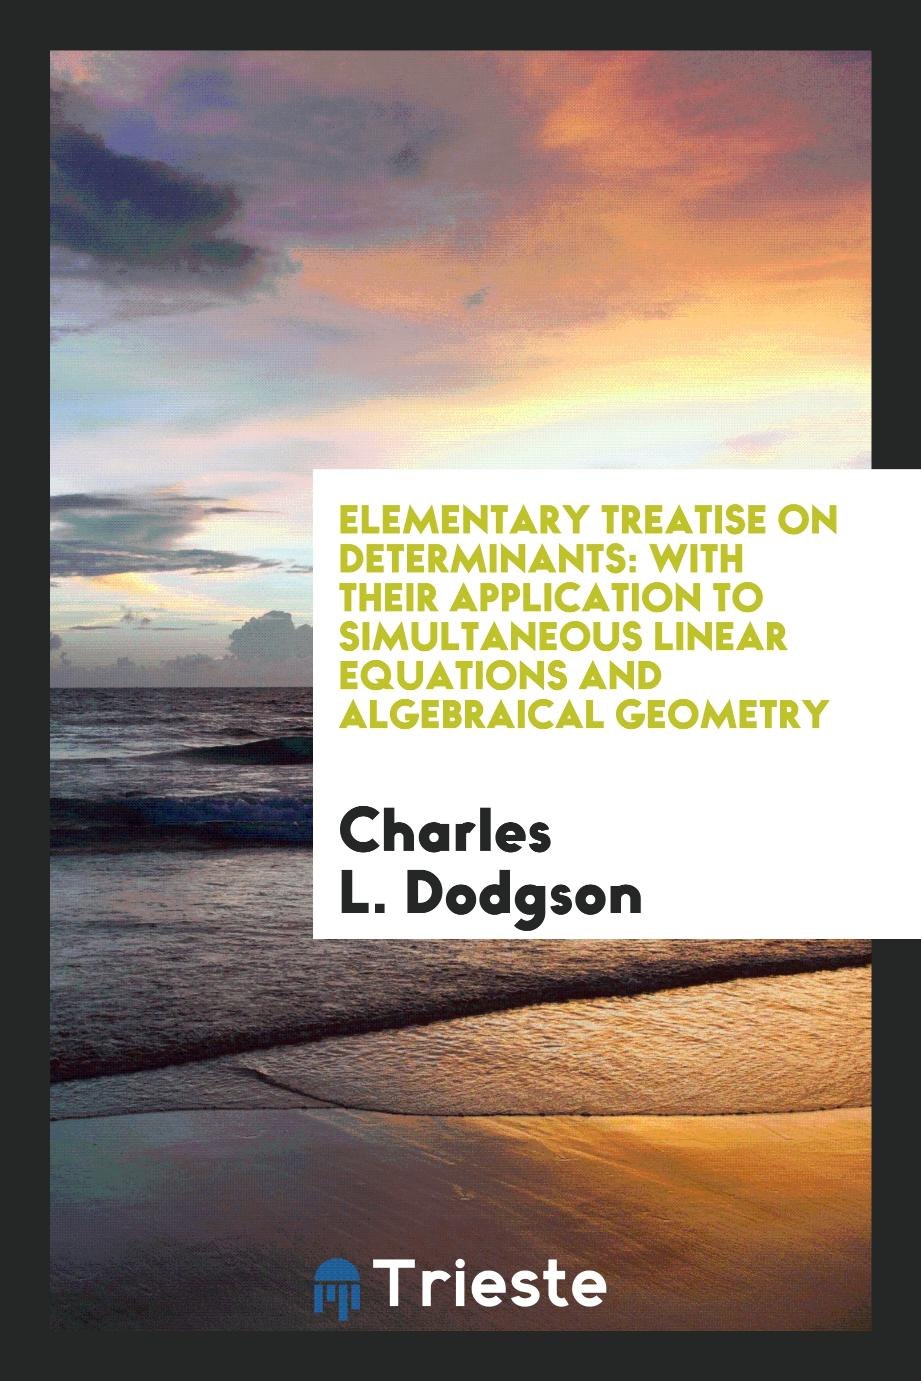 Elementary Treatise on Determinants: With Their Application to Simultaneous Linear Equations and Algebraical Geometry